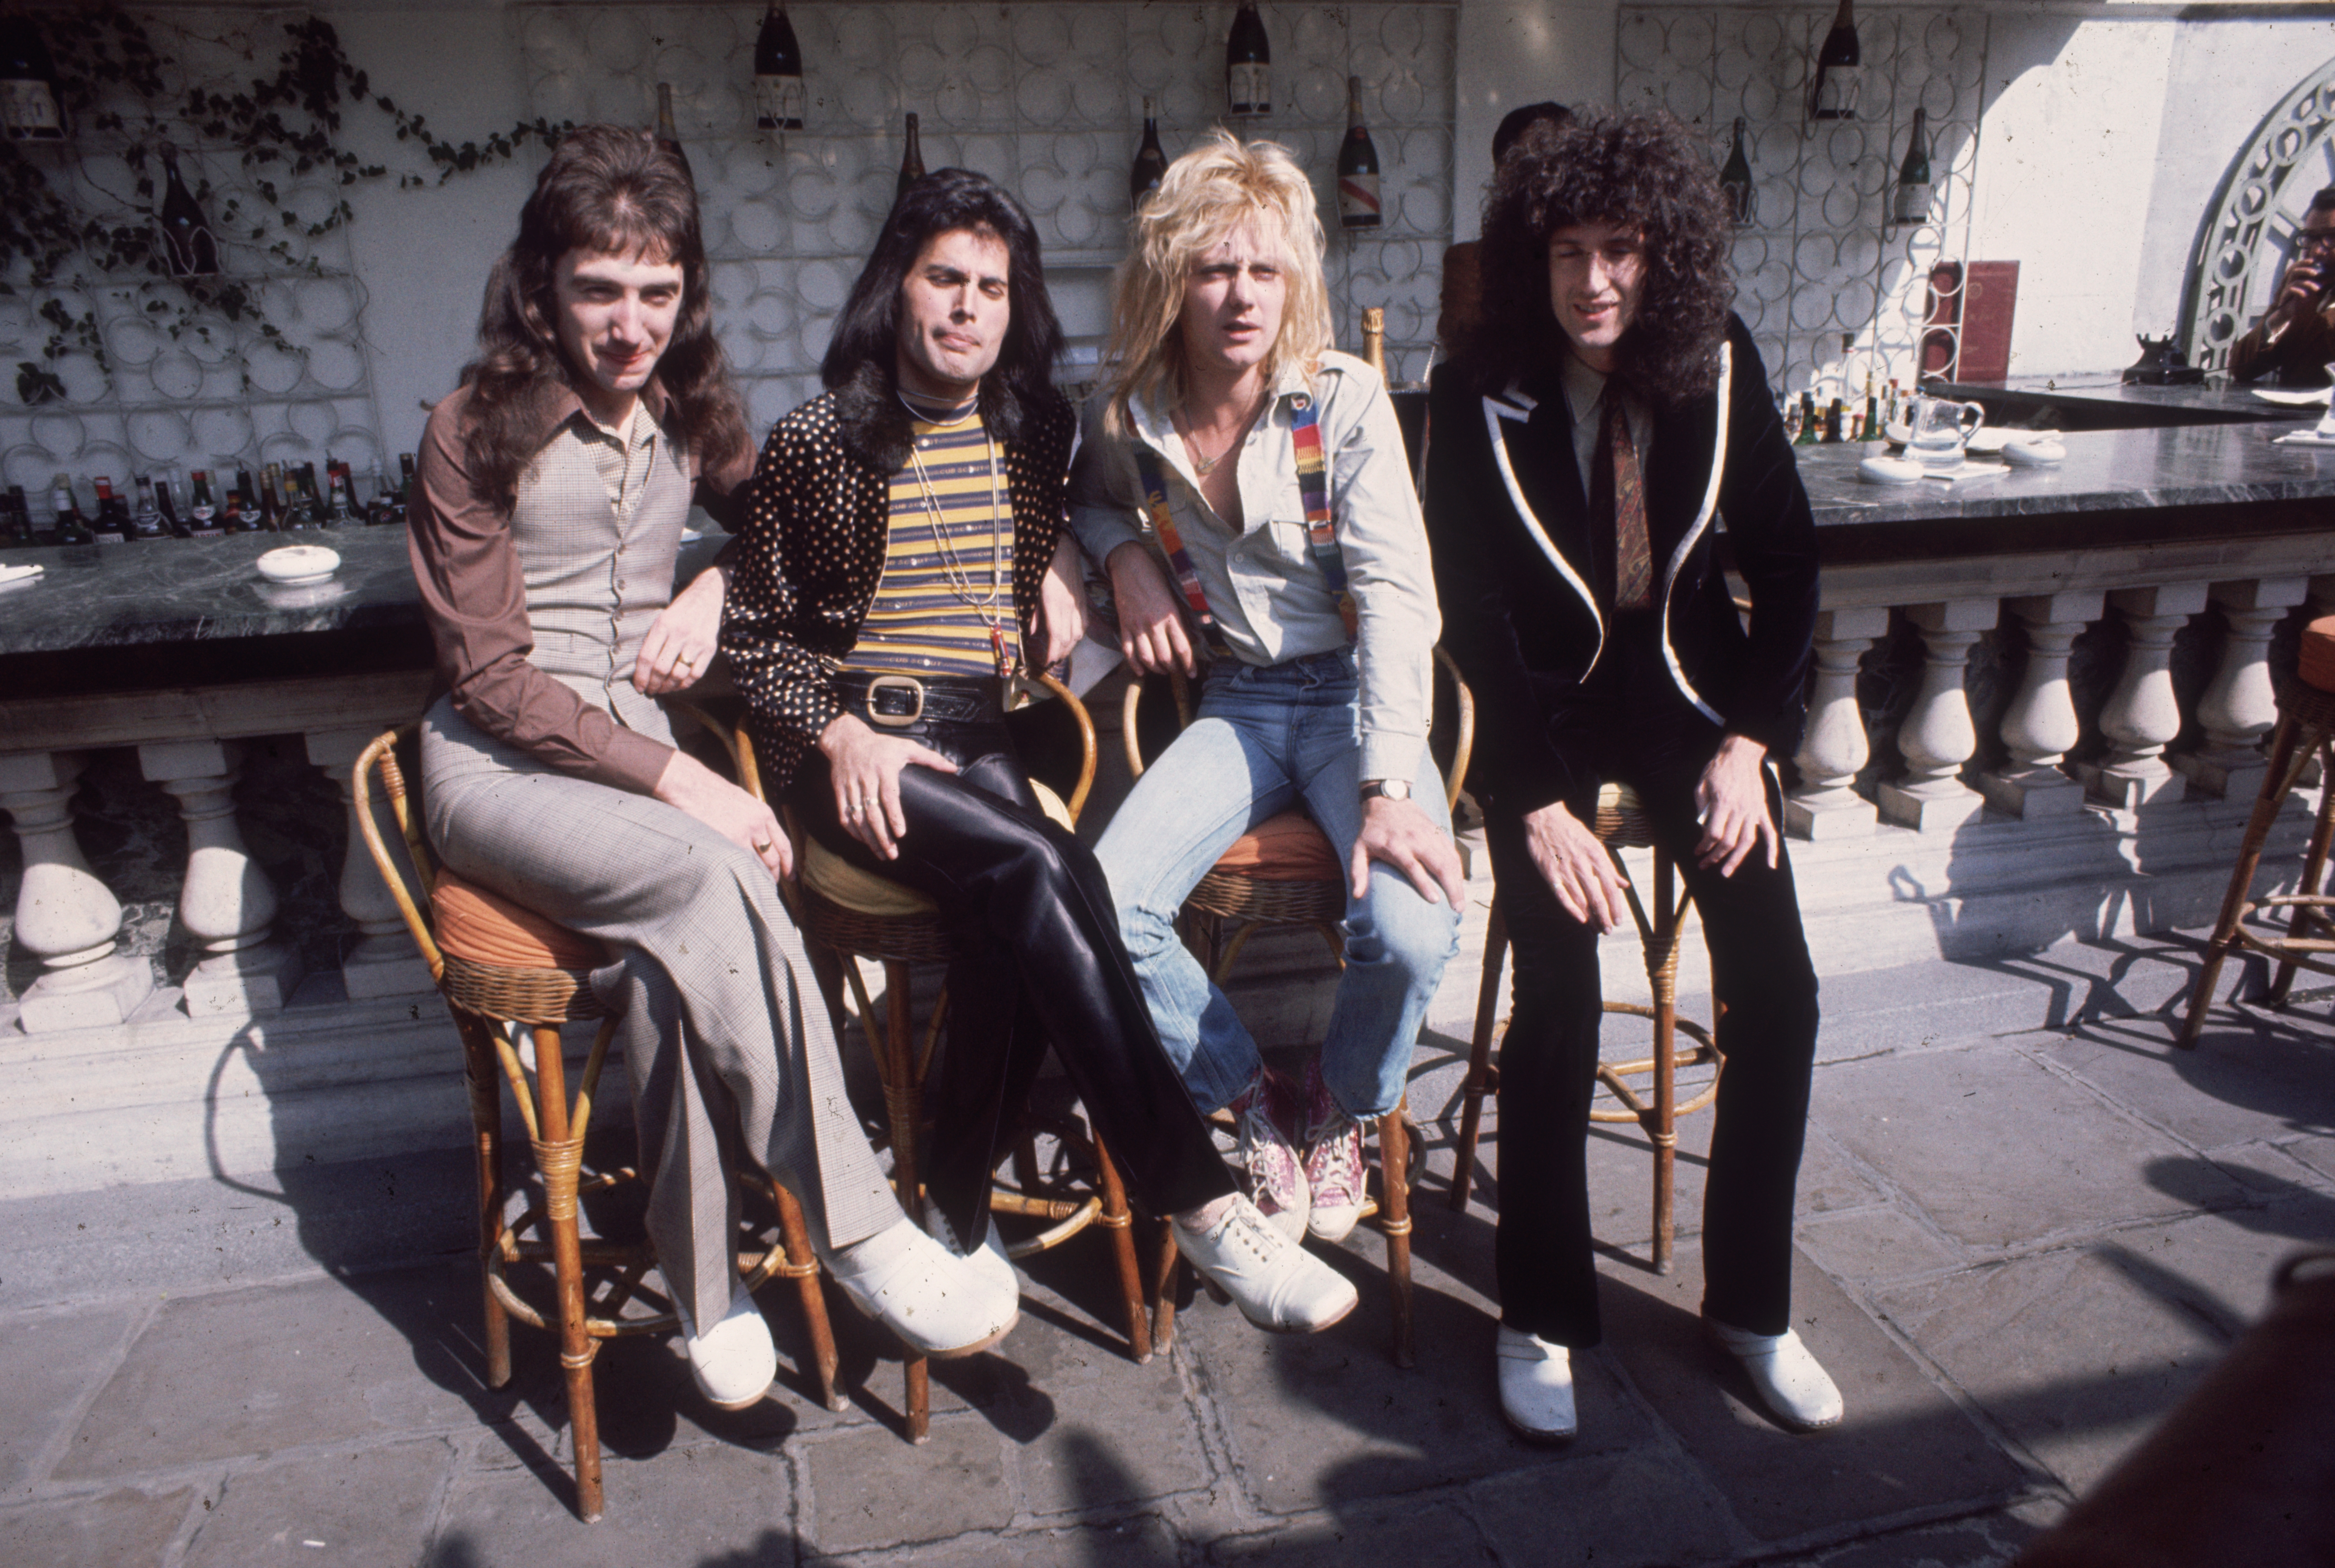 British rock group Queen at Les Ambassadeurs, where they were presented with silver, gold and platinum discs for sales in excess of one million of their hit single 'Bohemian Rhapsody'. The band are, from left to right, John Deacon, Freddie Mercury (Frederick Bulsara, 1946 - 1991), Roger Taylor and Brian May. (Getty Images)